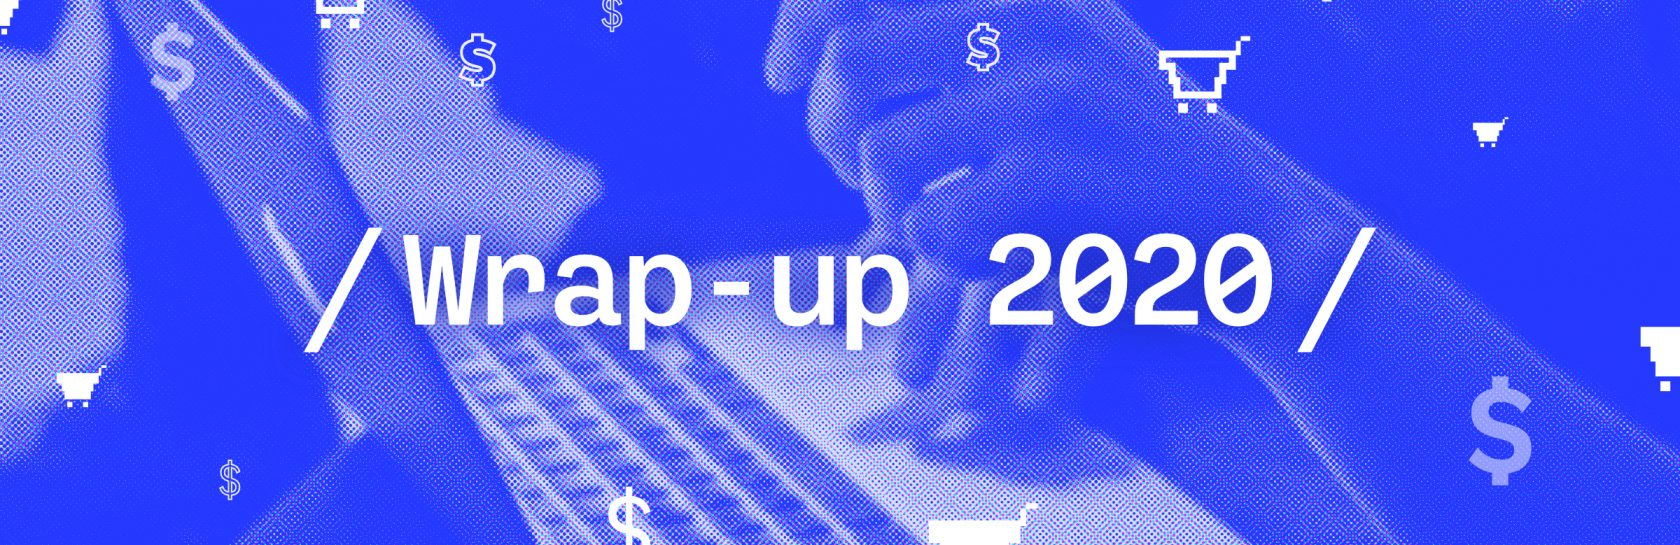 wrap-up-2020-la-web-shop